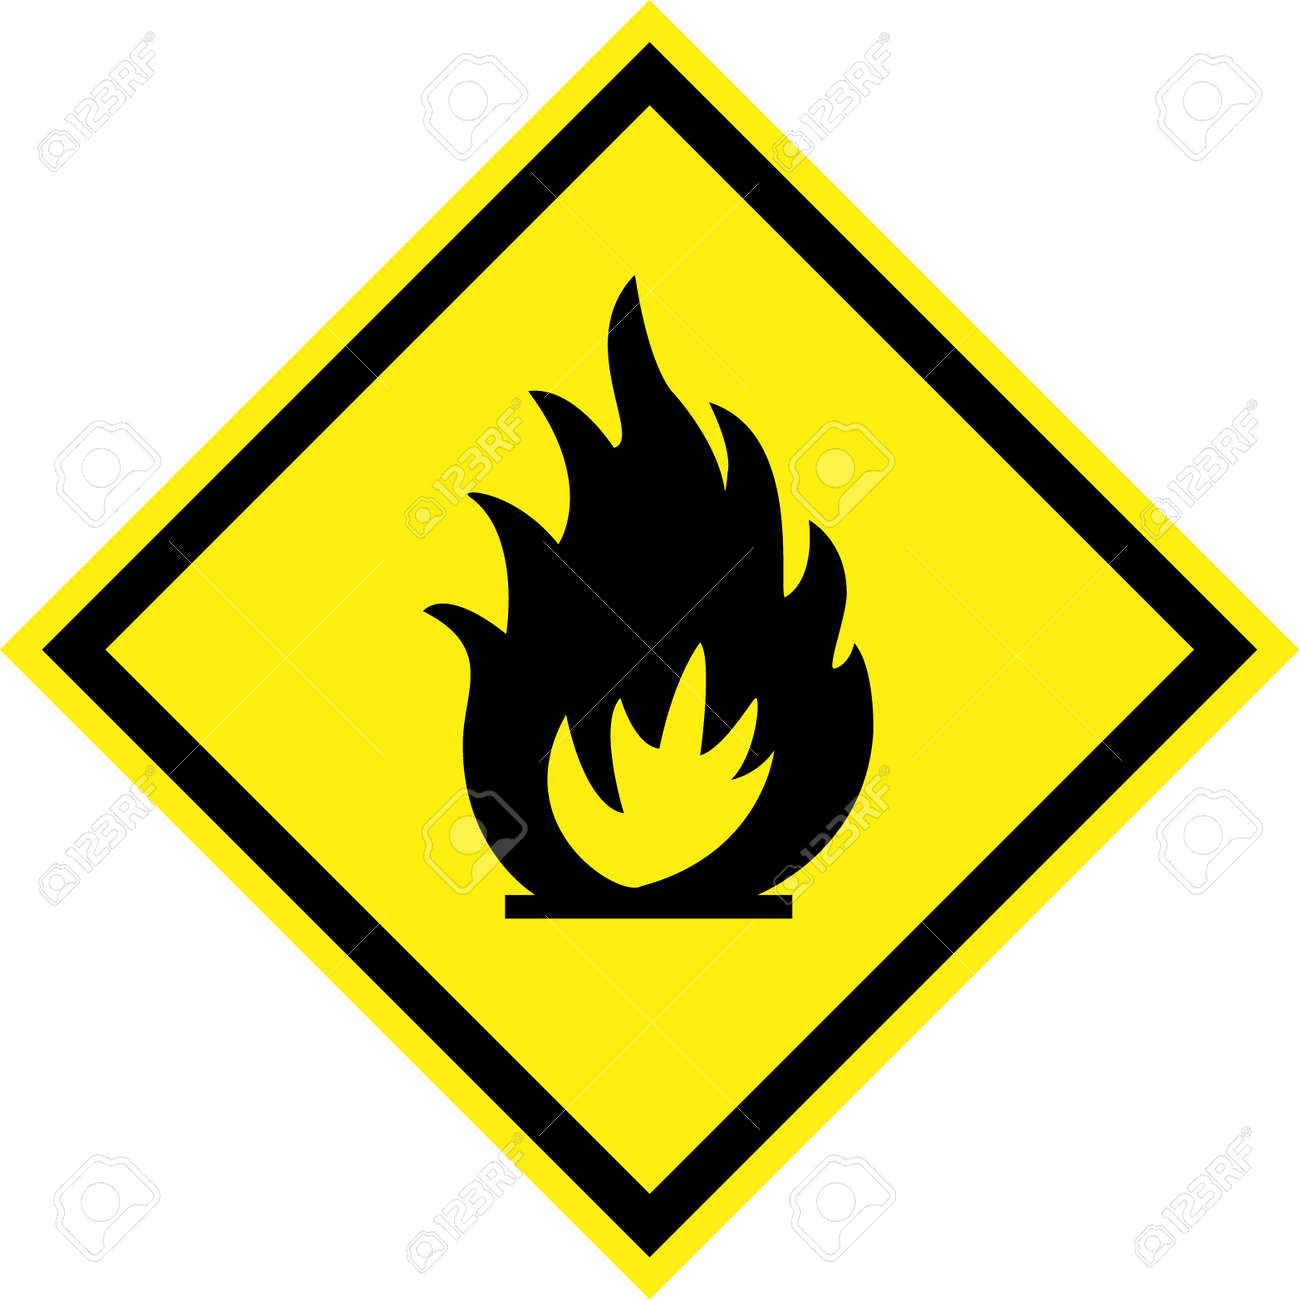 Yellow Hazard Sign With Fire Symbol Stock Photo Picture And Royalty